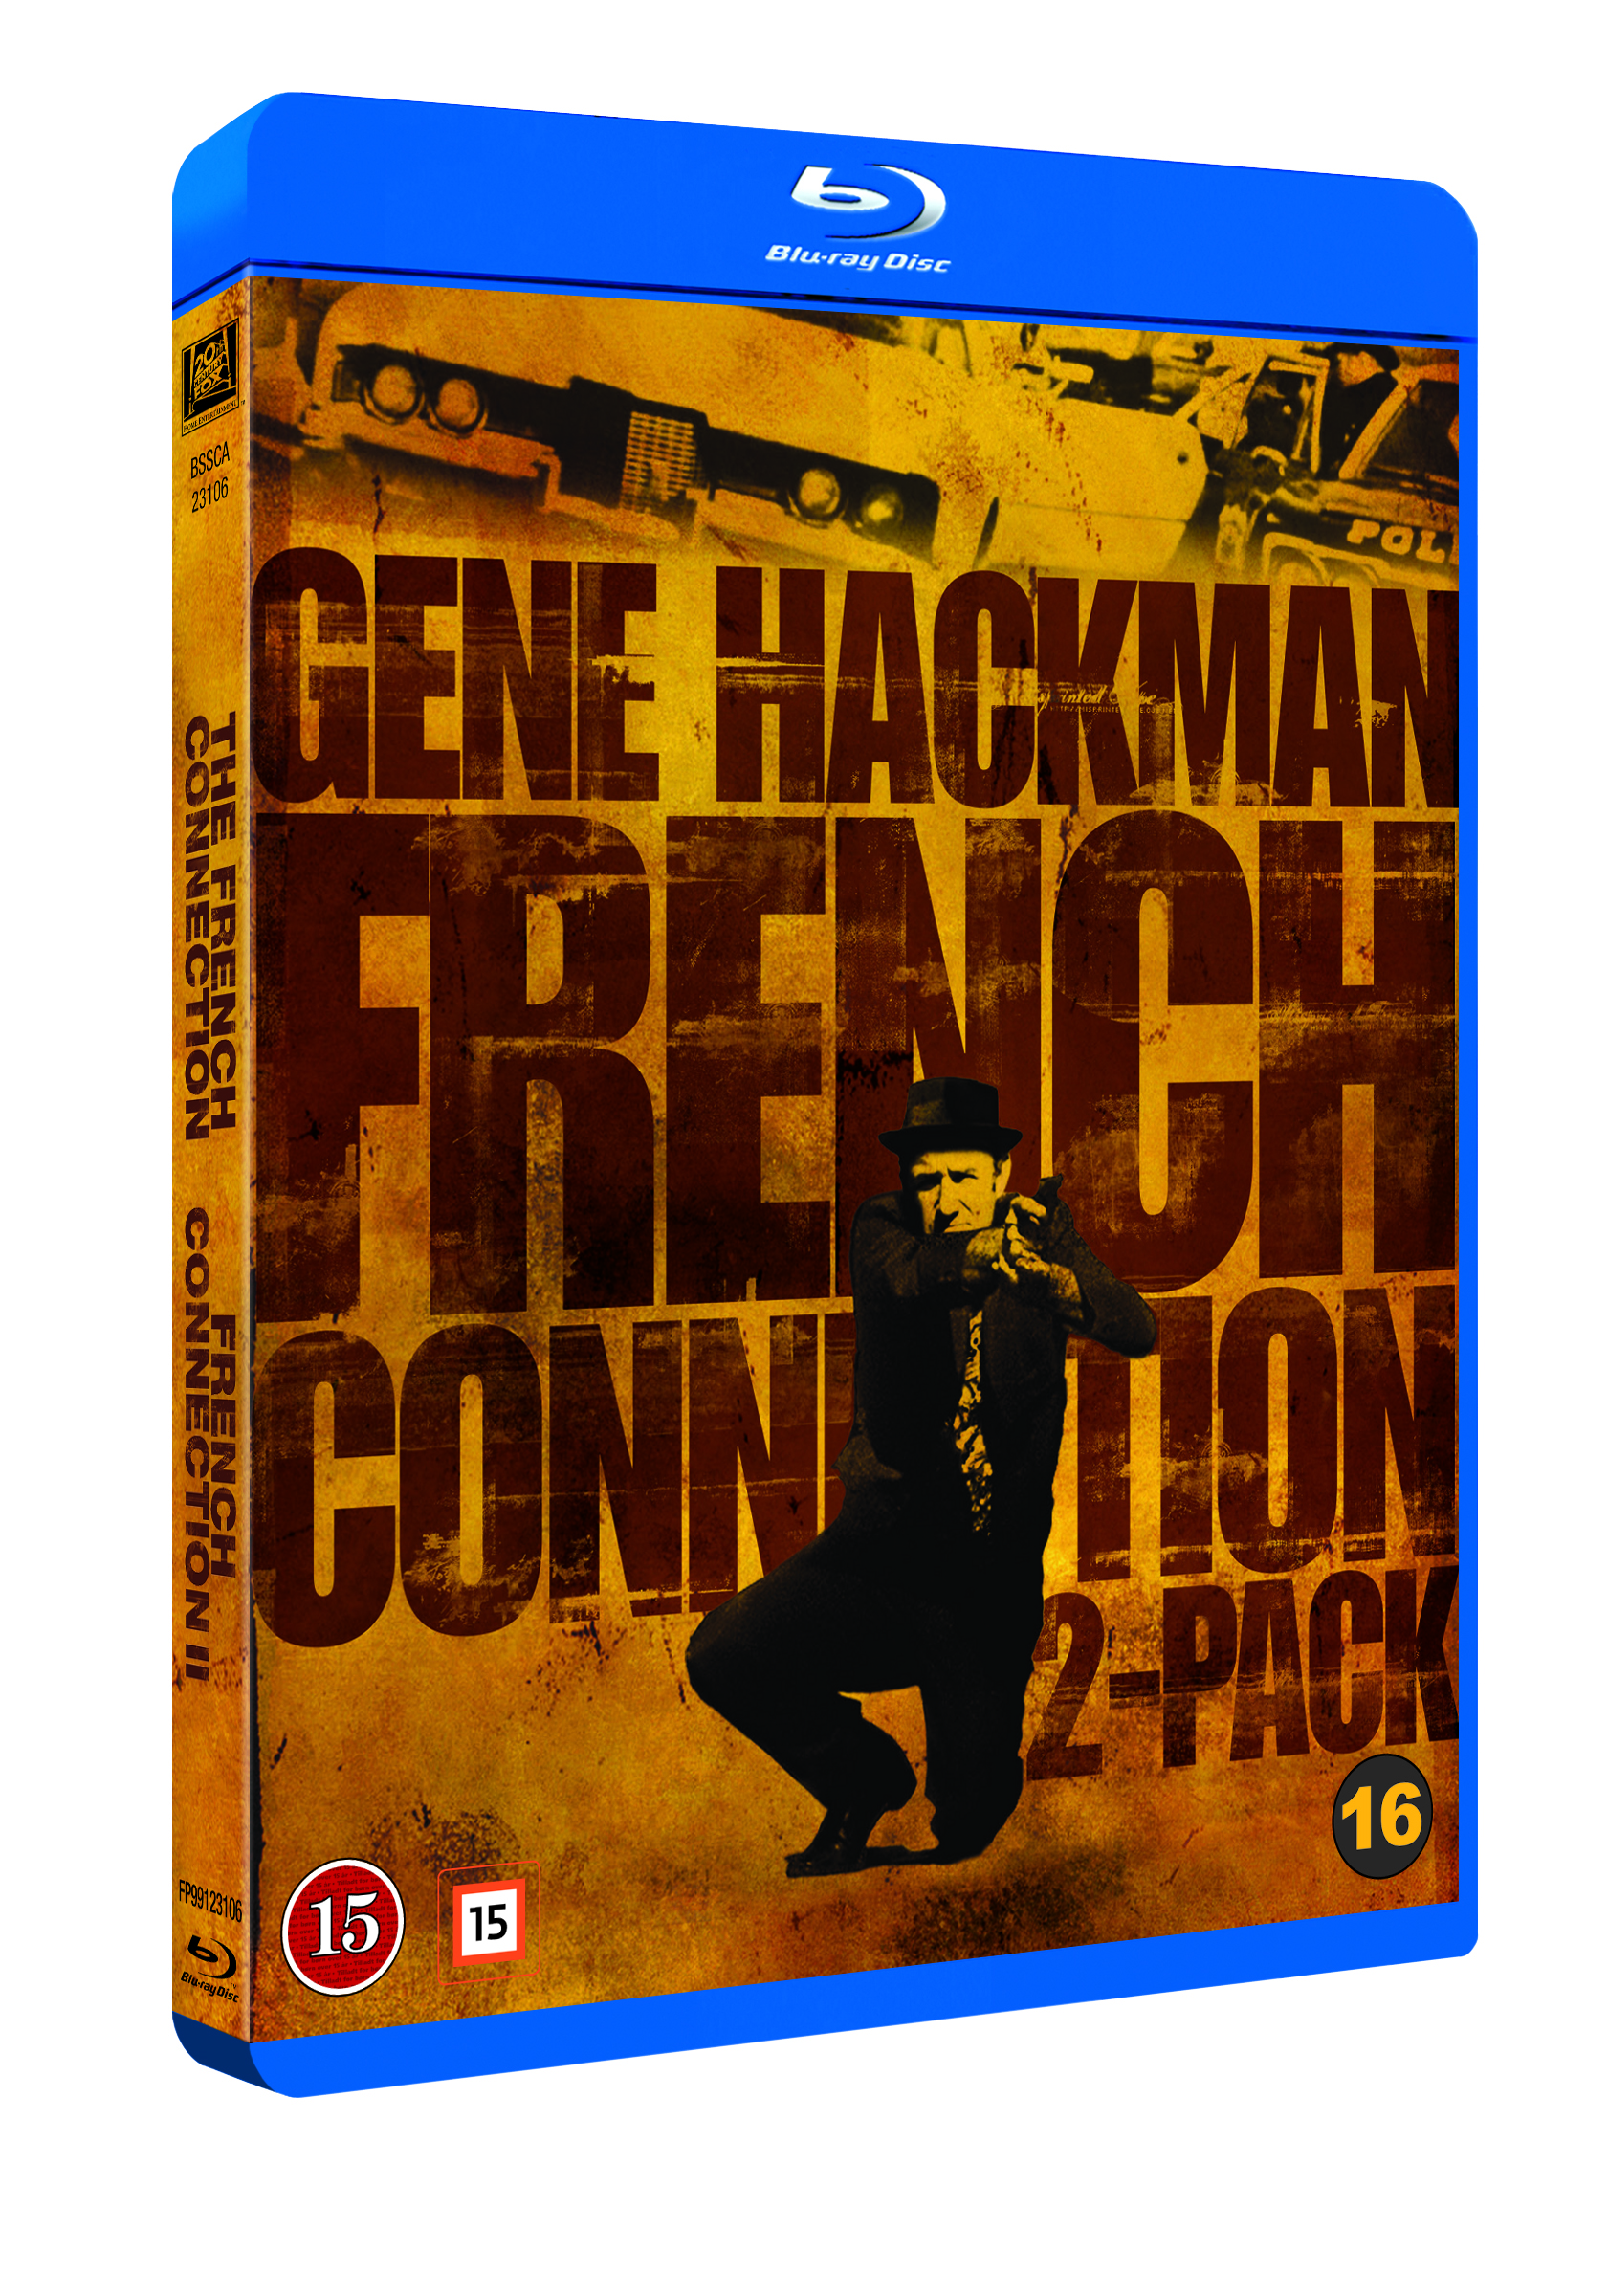 French Connection 1 and 2 Boxset (Blu-Ray)